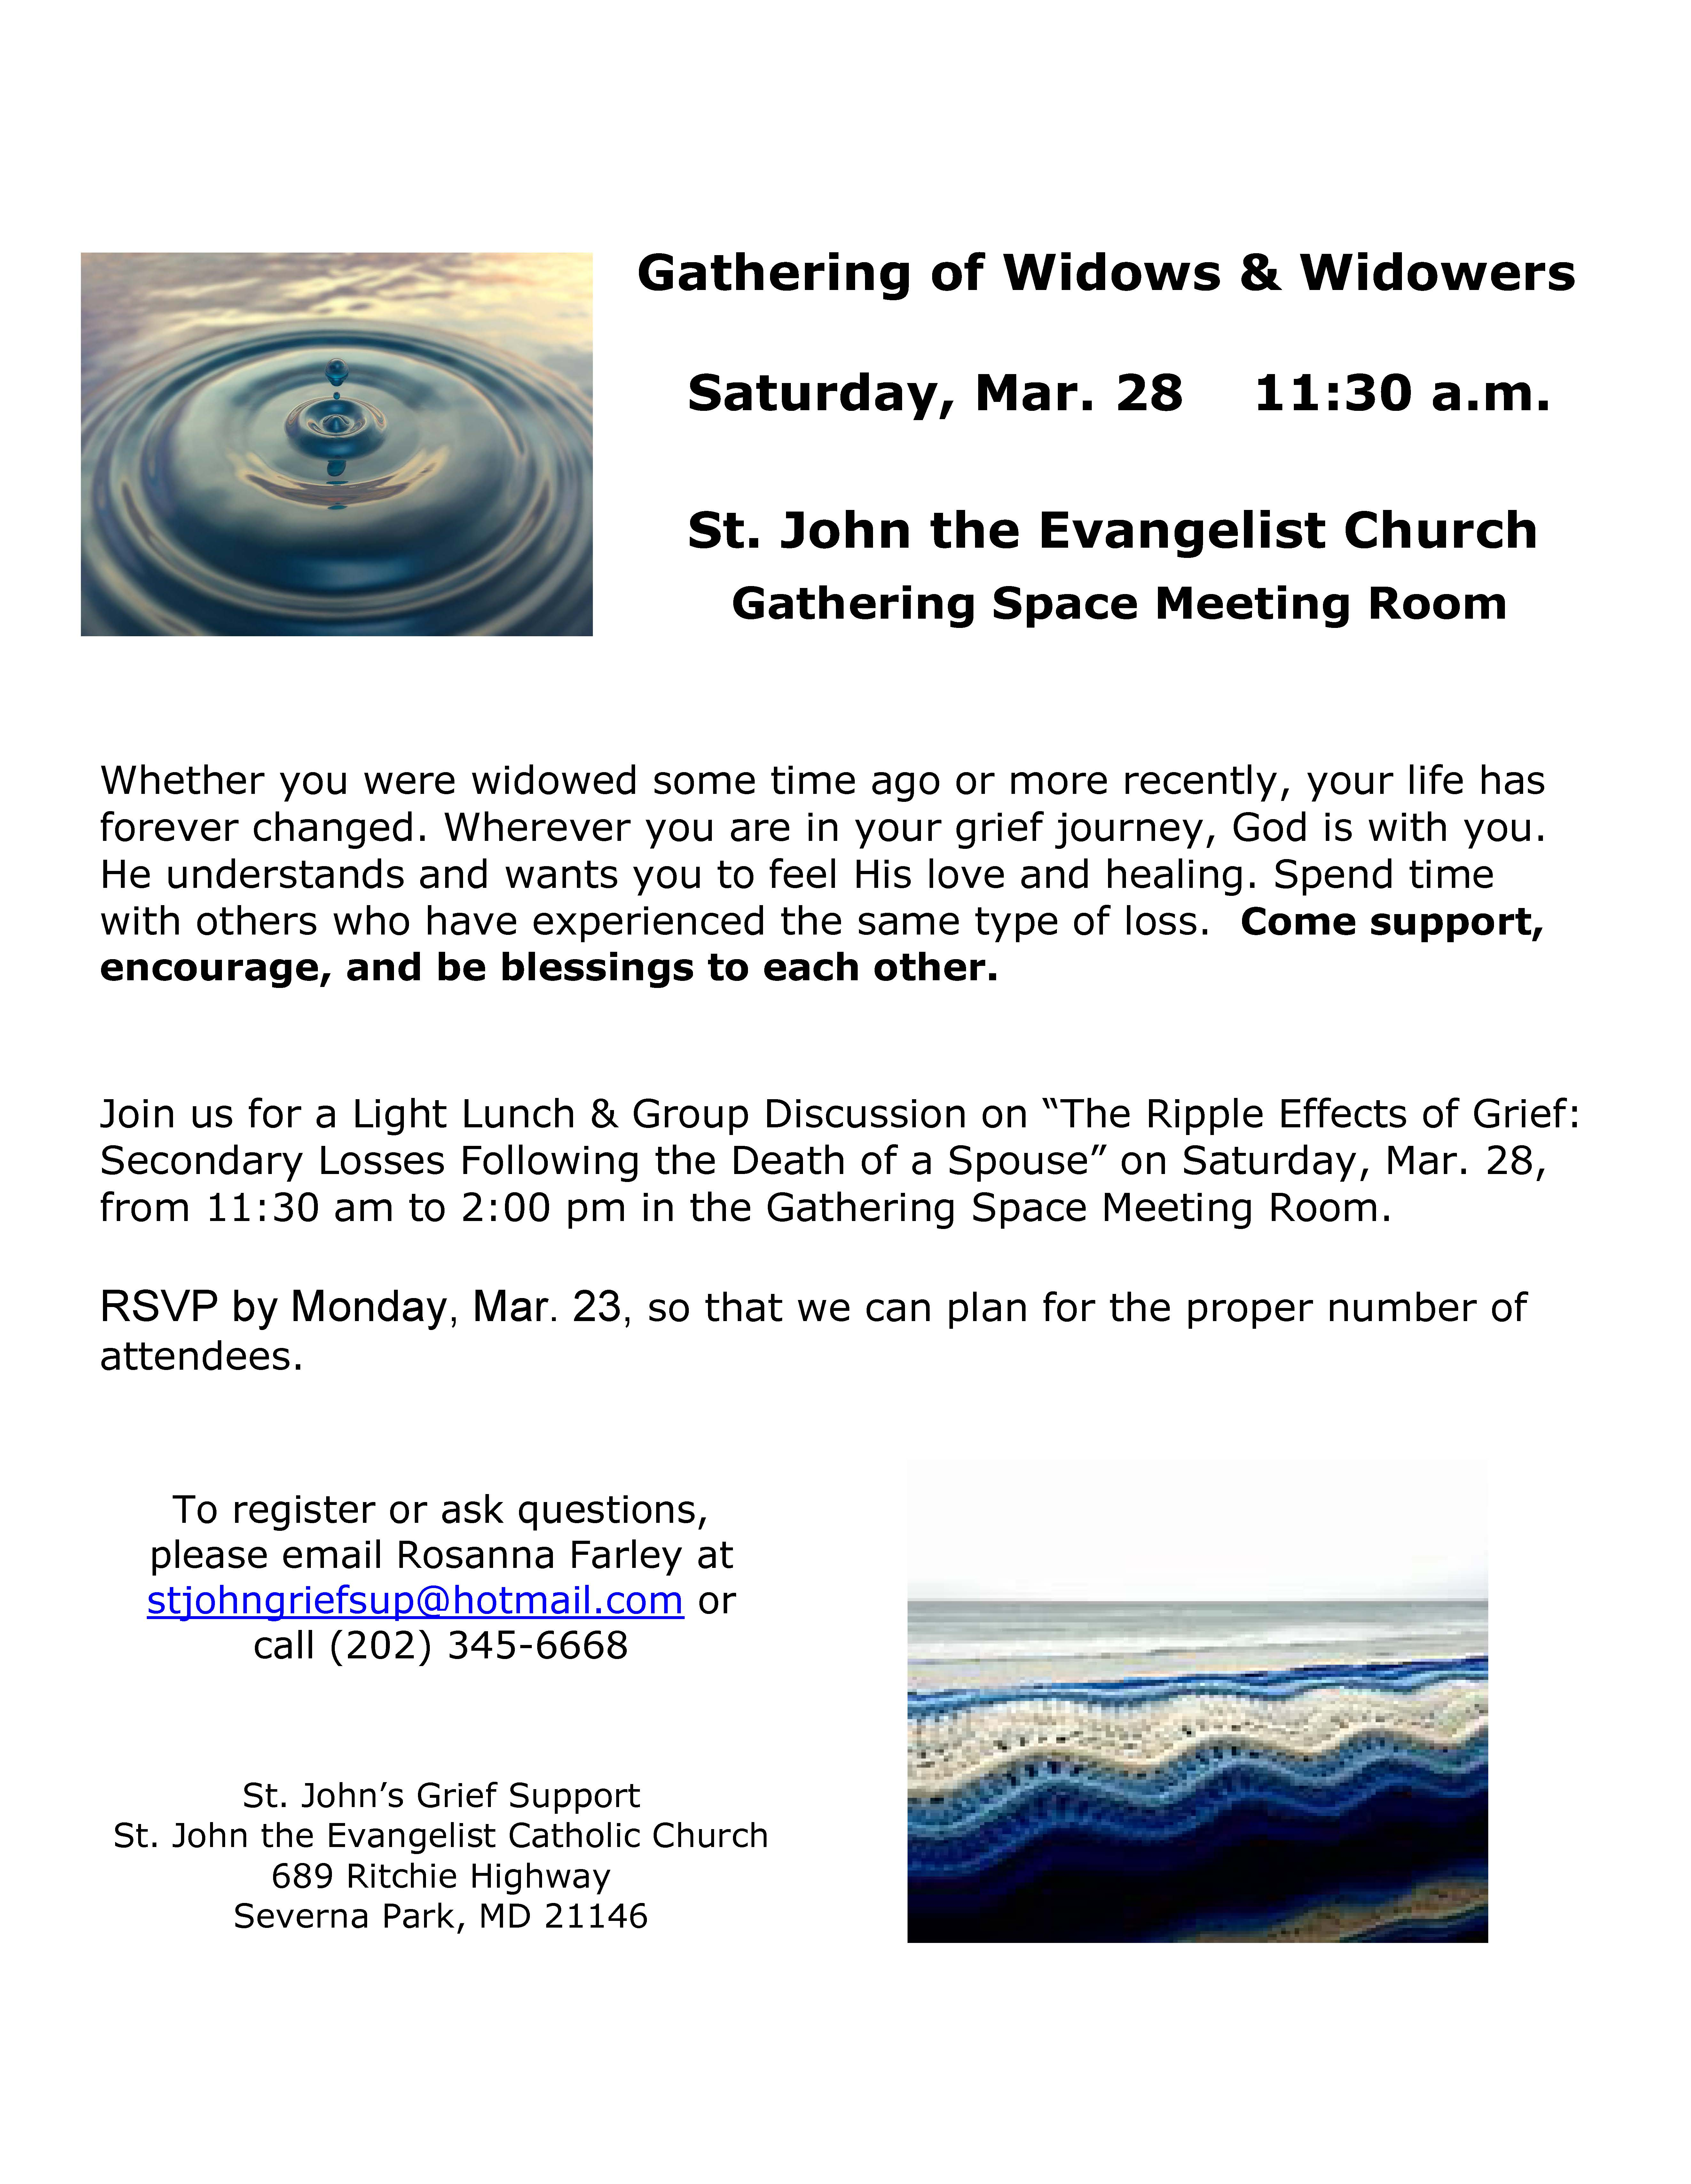 2020 03 28 Widowed Gathering Flyer St Johns SP